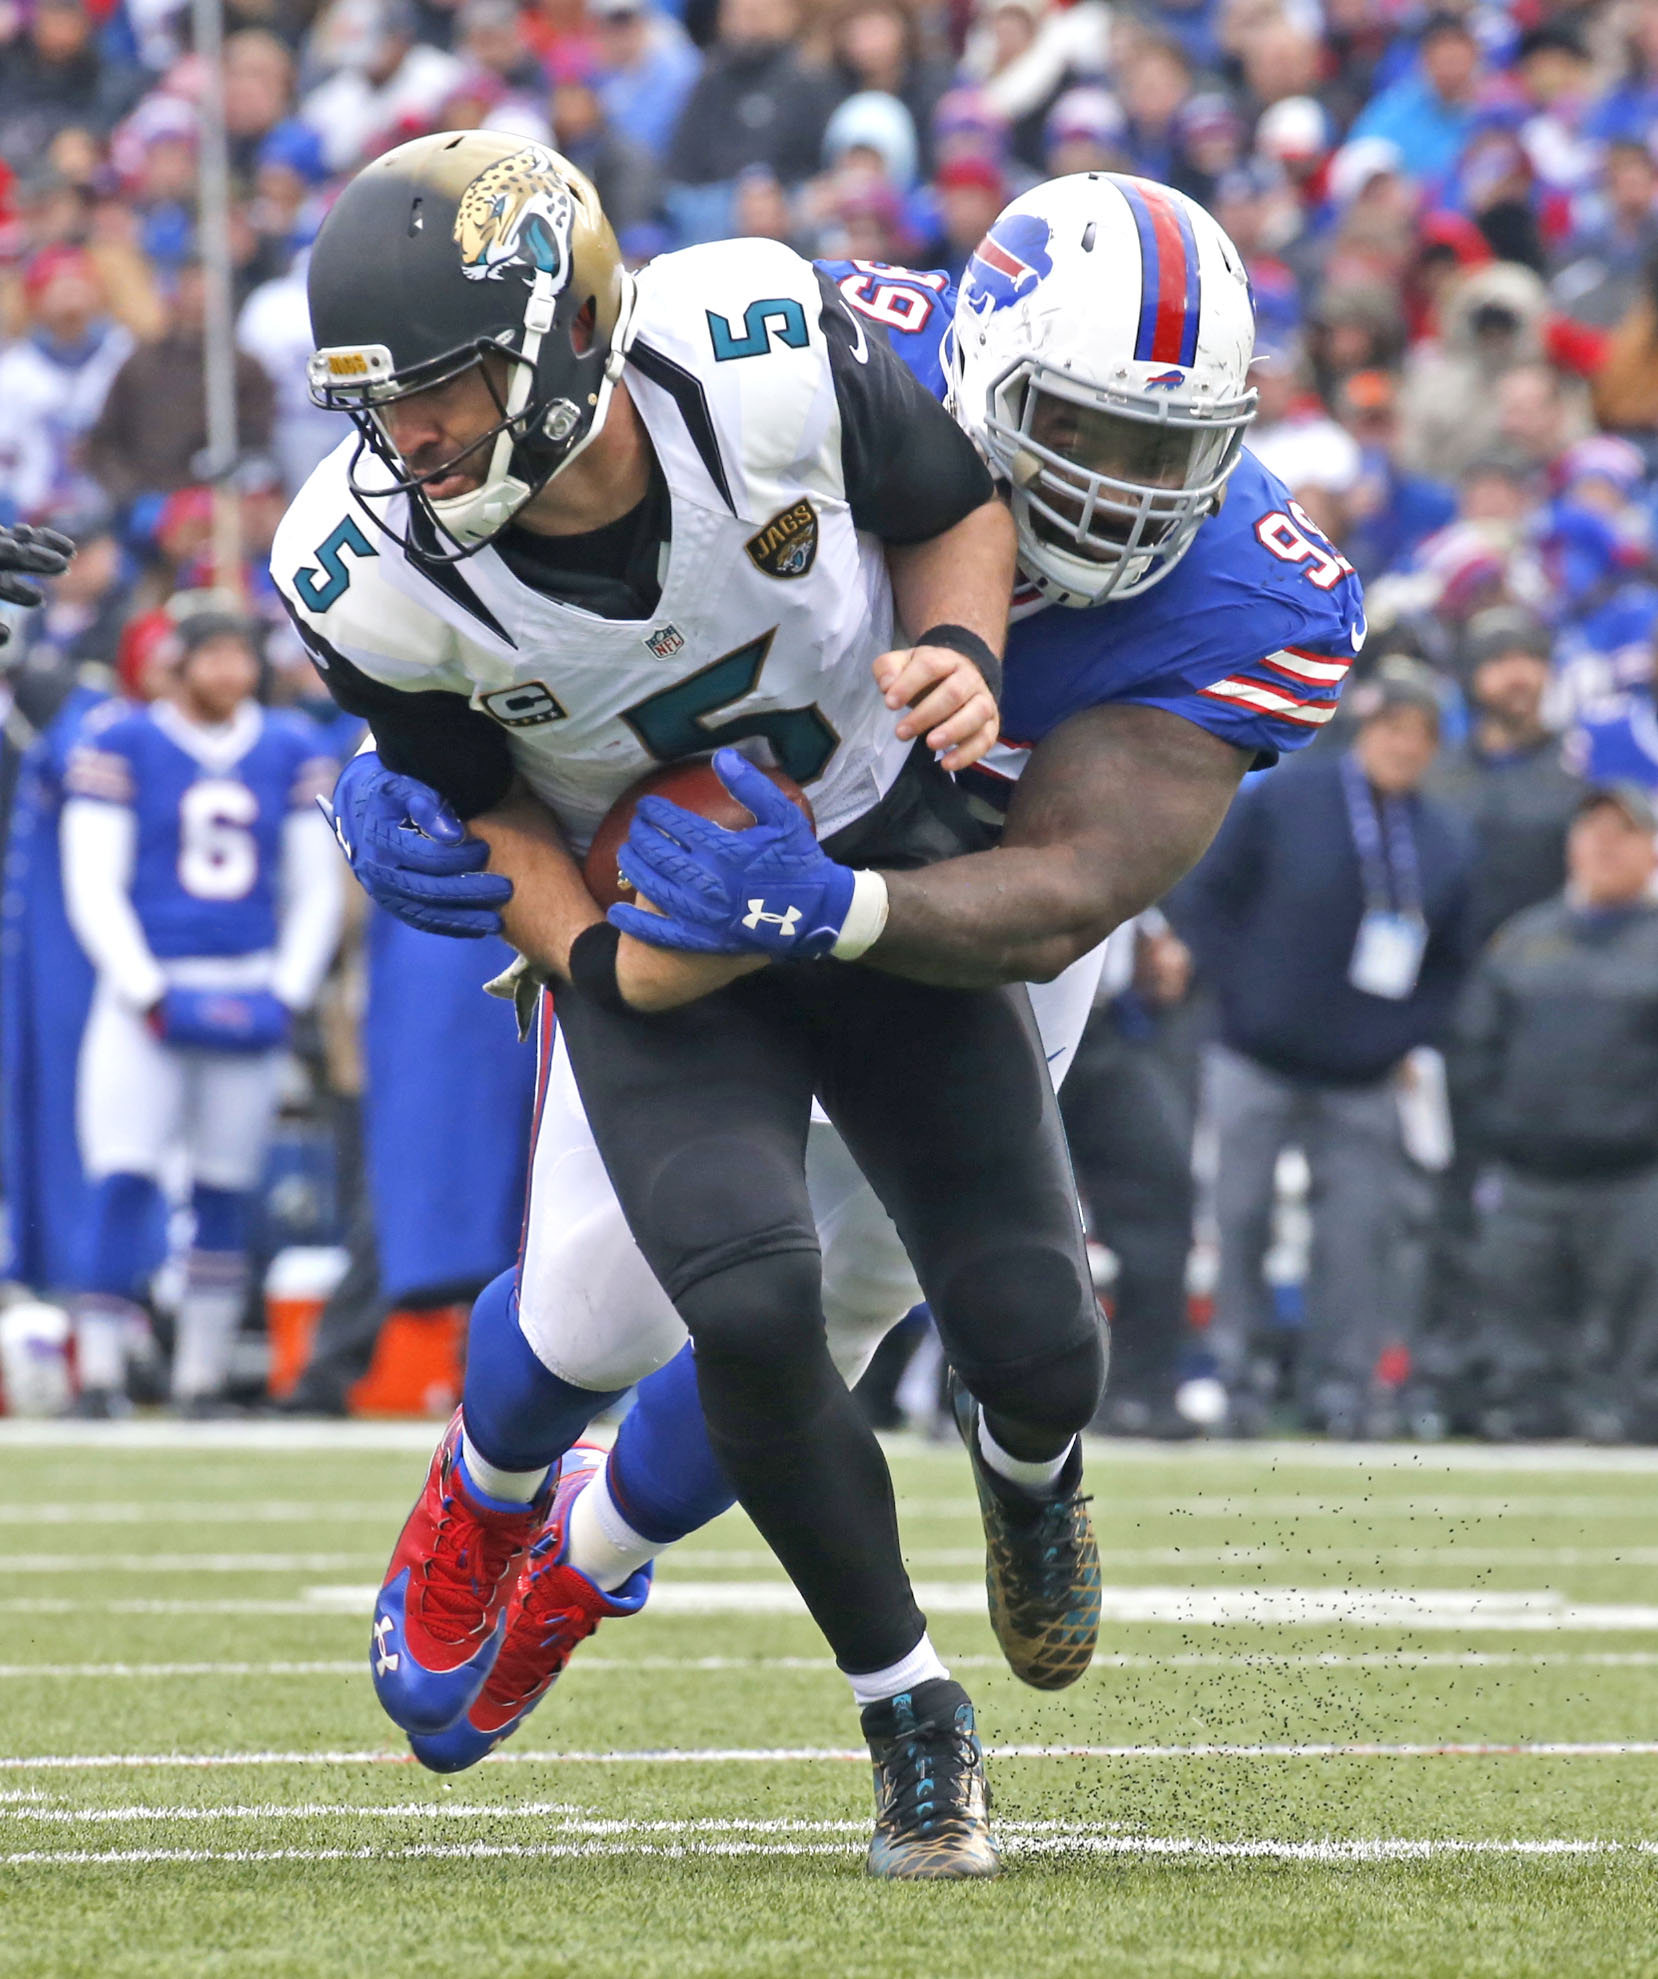 Marcell Dareus sacks Jacksonville's QB Blake Bortles in first half action Buffalo Bills vs. Jacksonville game today at New Era Field in Orchard Park on Sunday, Nov. 27, 2016.  (Robert Kirkham/Buffalo News)